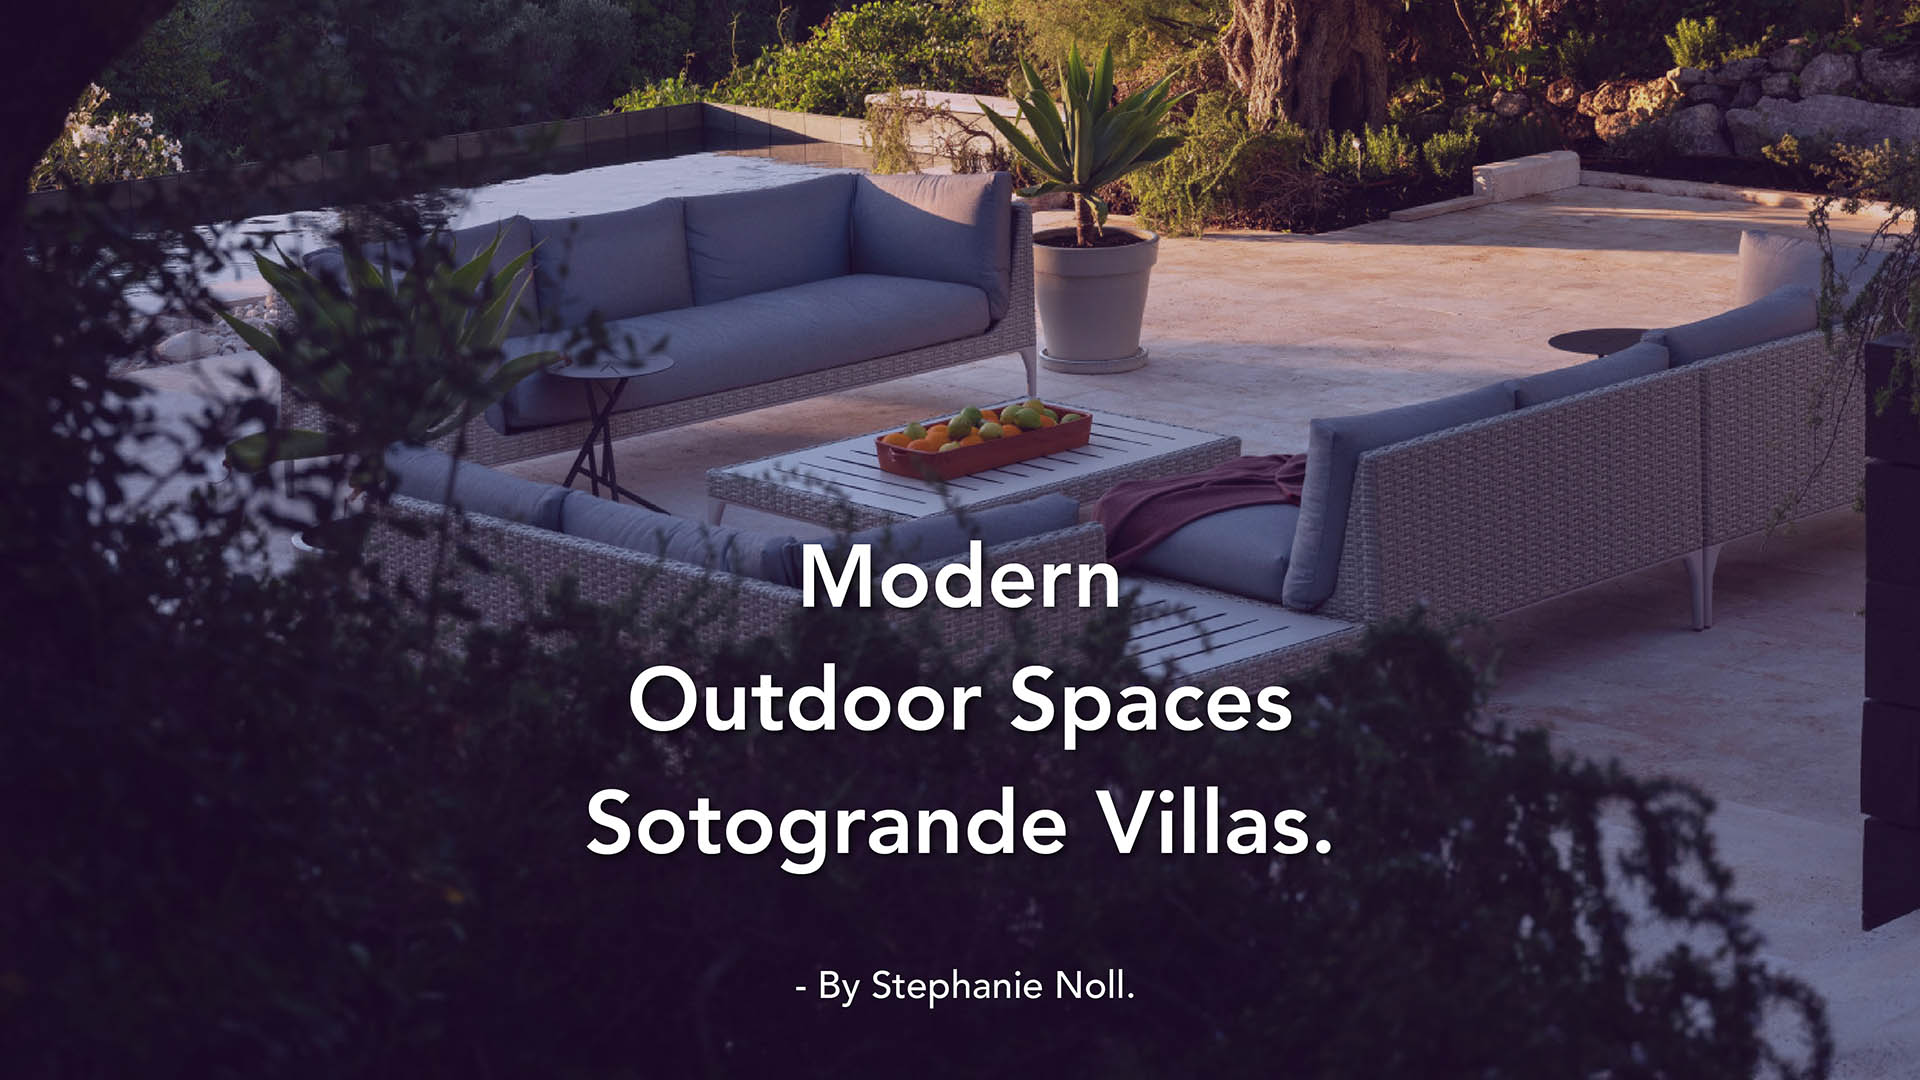 The new must-have in Sotogrande in 2021: Outdoor Area!